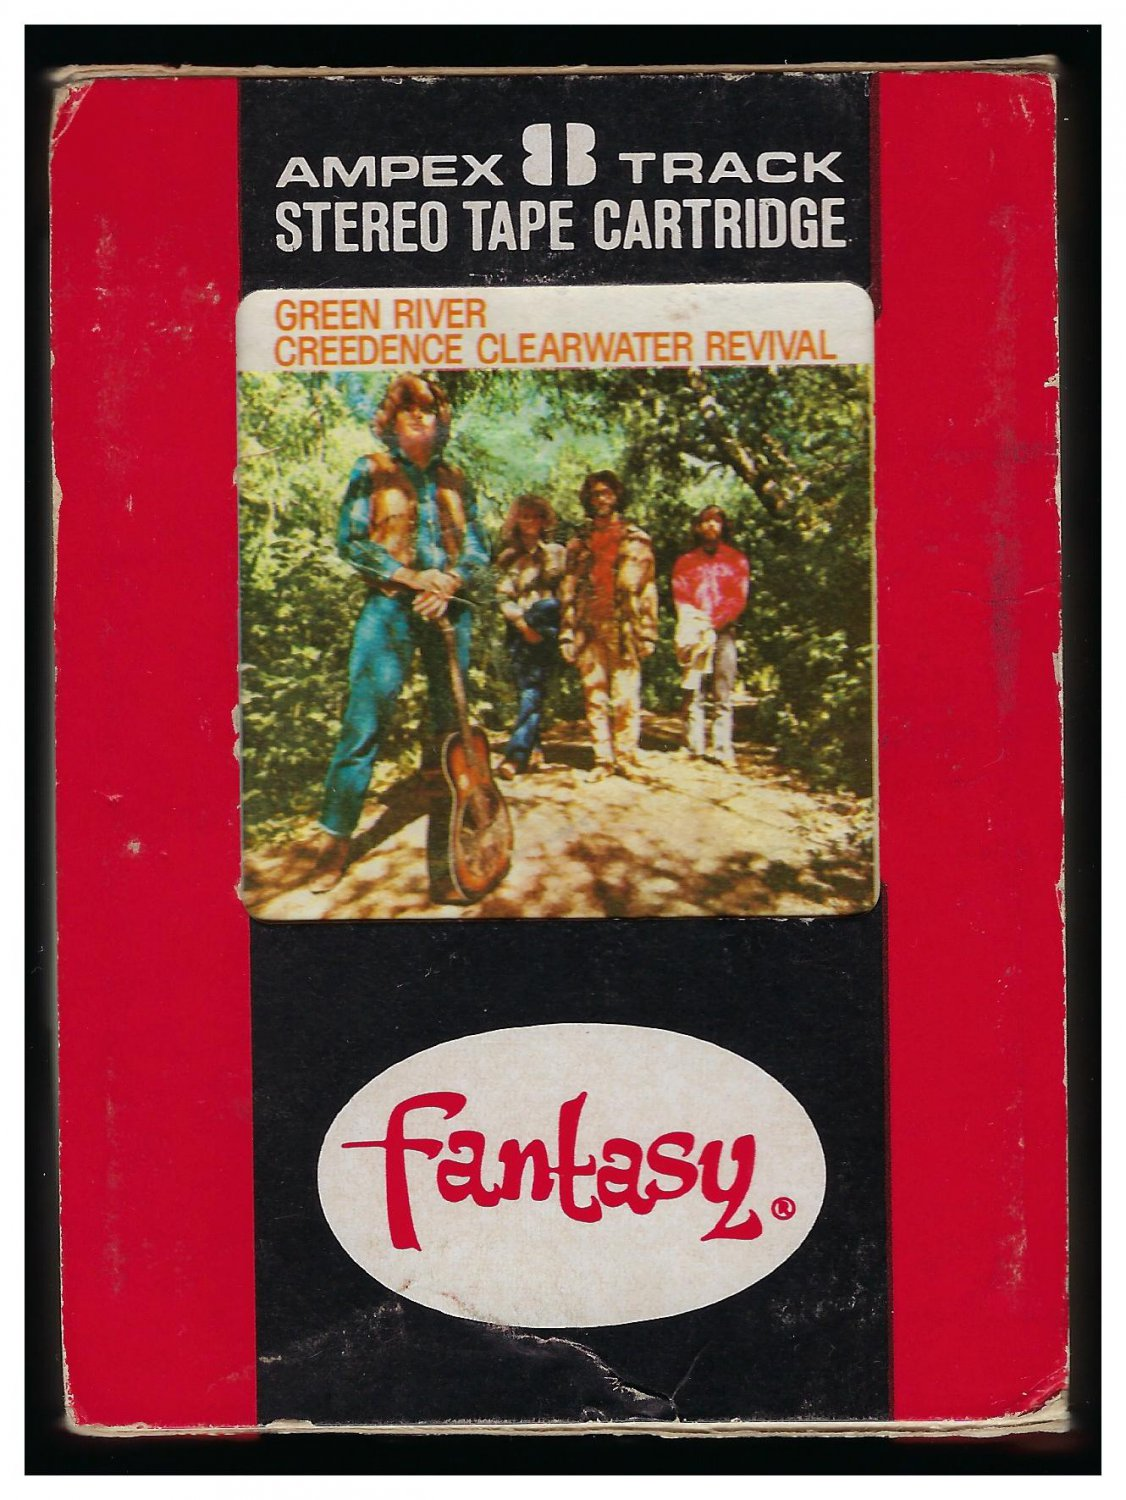 Creedence Clearwater Revival - Green River 1969 AMPEX FANTASY A21C 8-TRACK TAPE